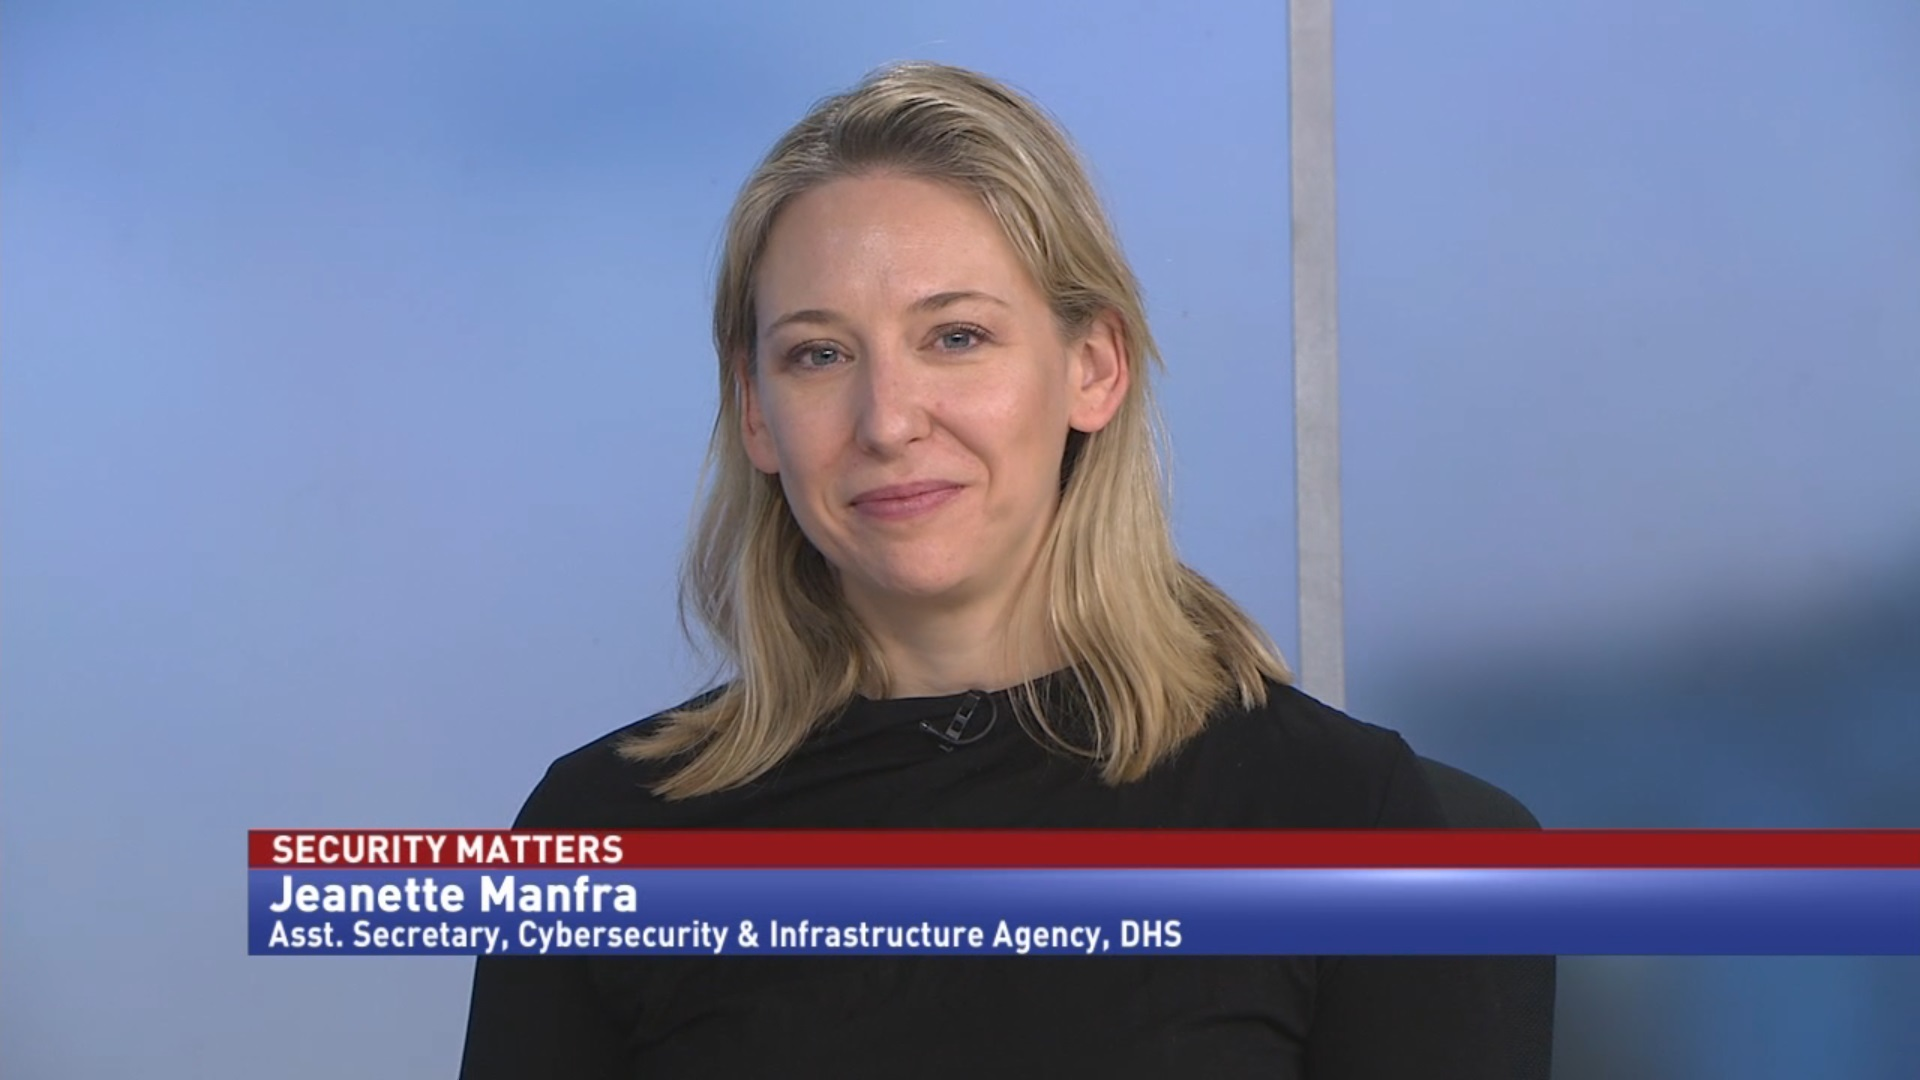 Priorities for newly-named Cybersecurity & Infrastructure Security Agency